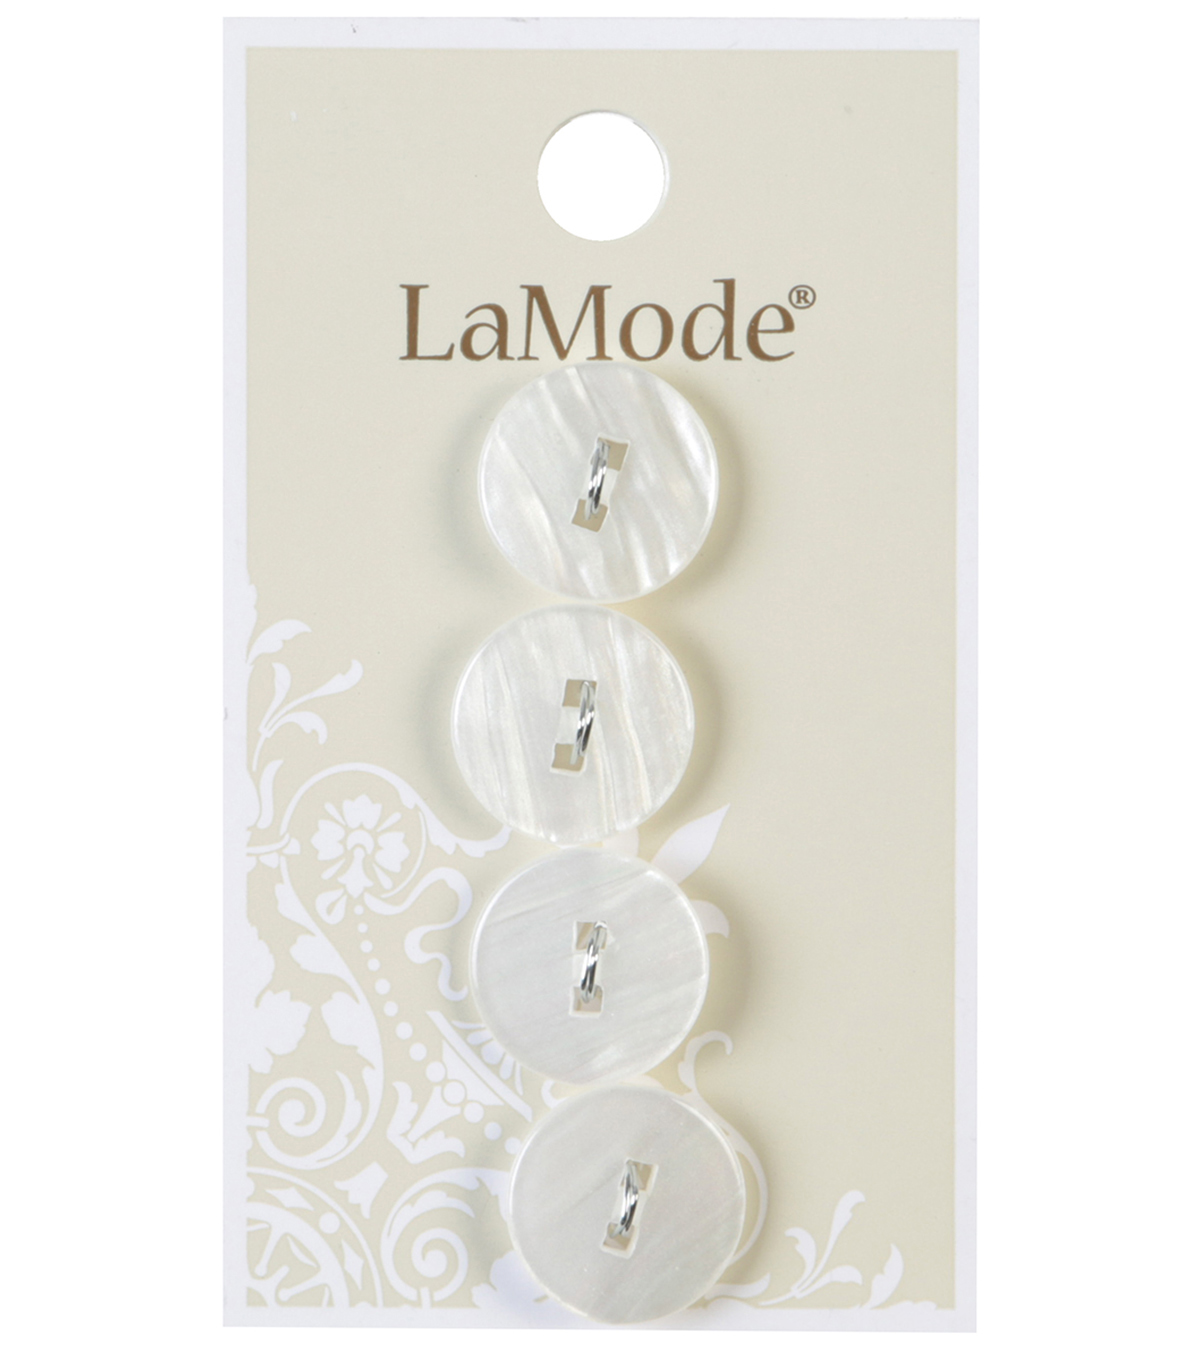 LaMode 2 Squared Hole White Buttons 16mm